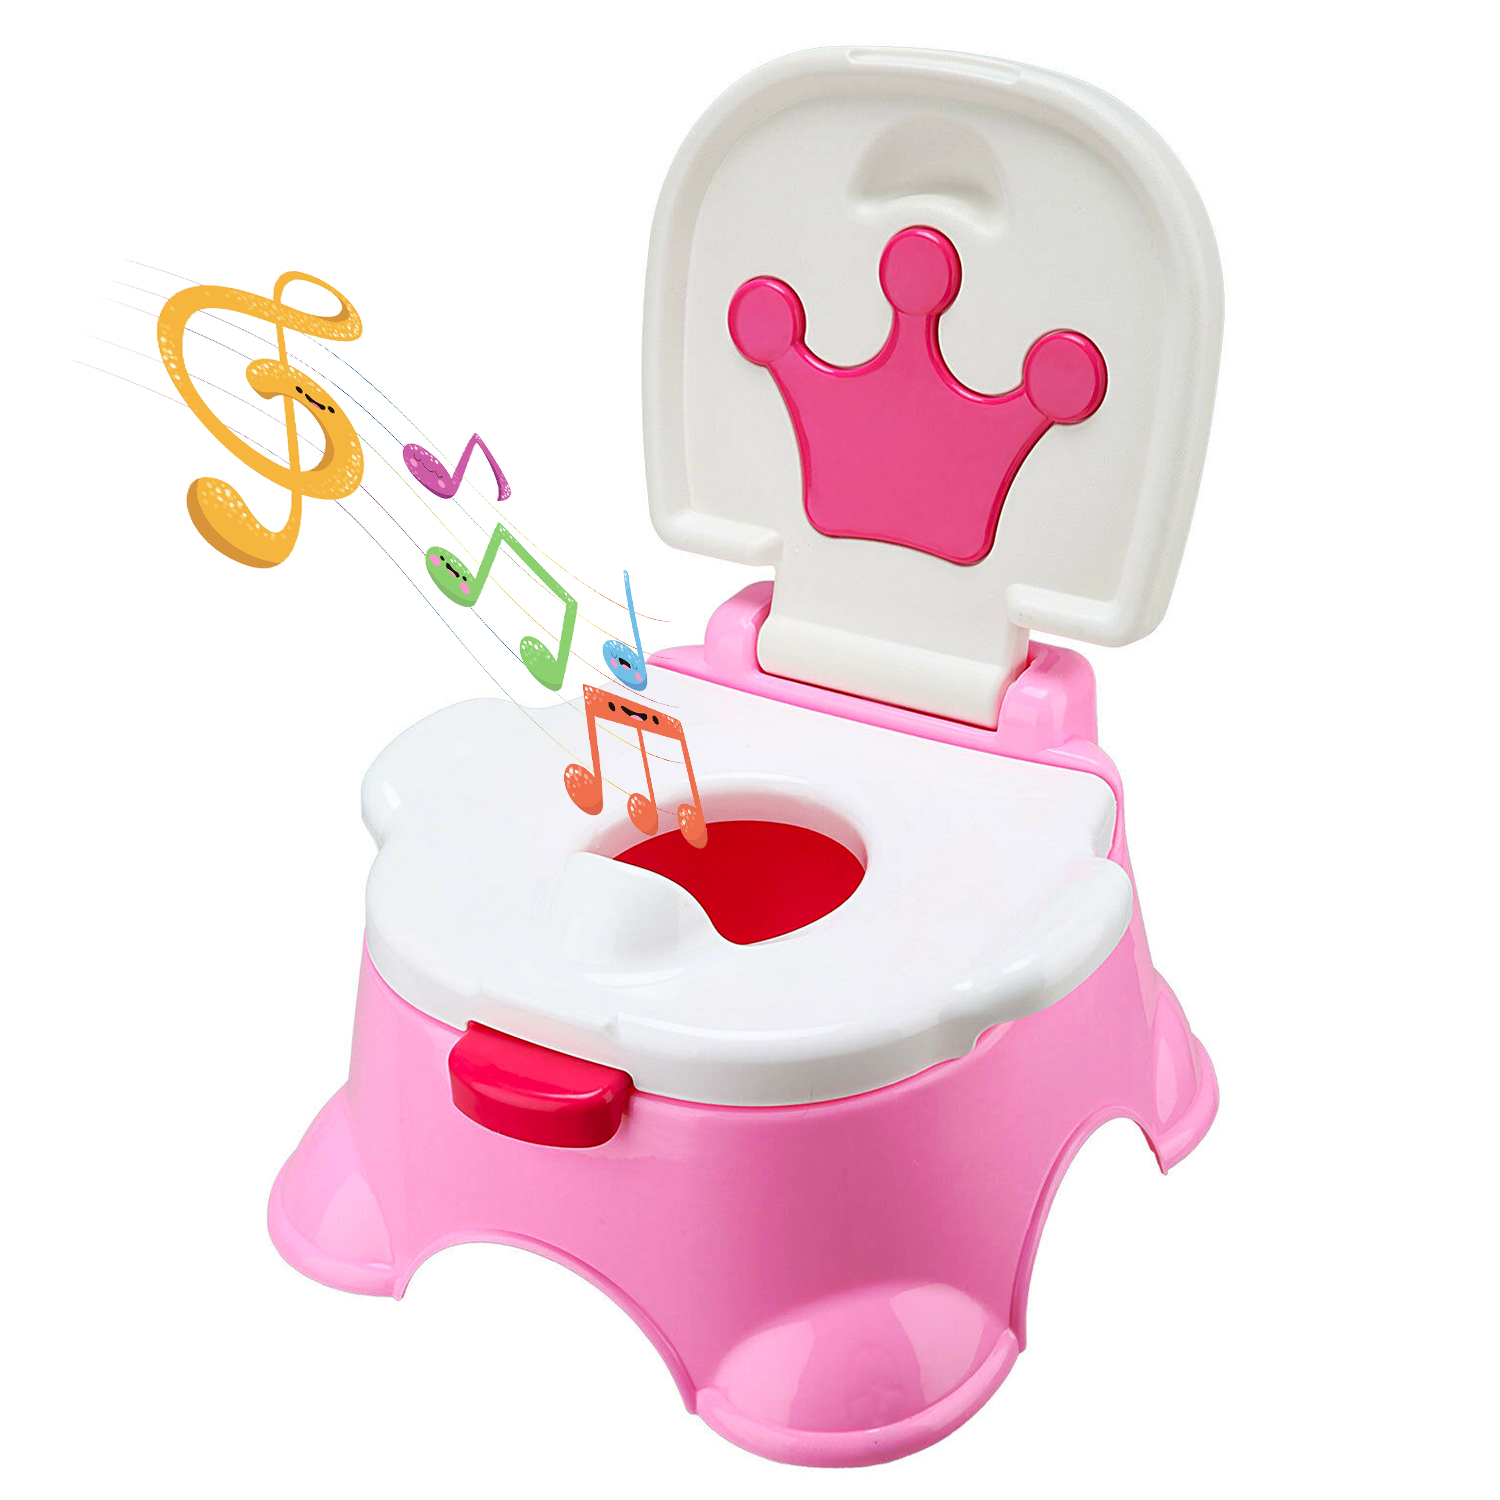 Strong Baby Fun Training Toilet Kids Child Children Potty Trainer Seat Urinal